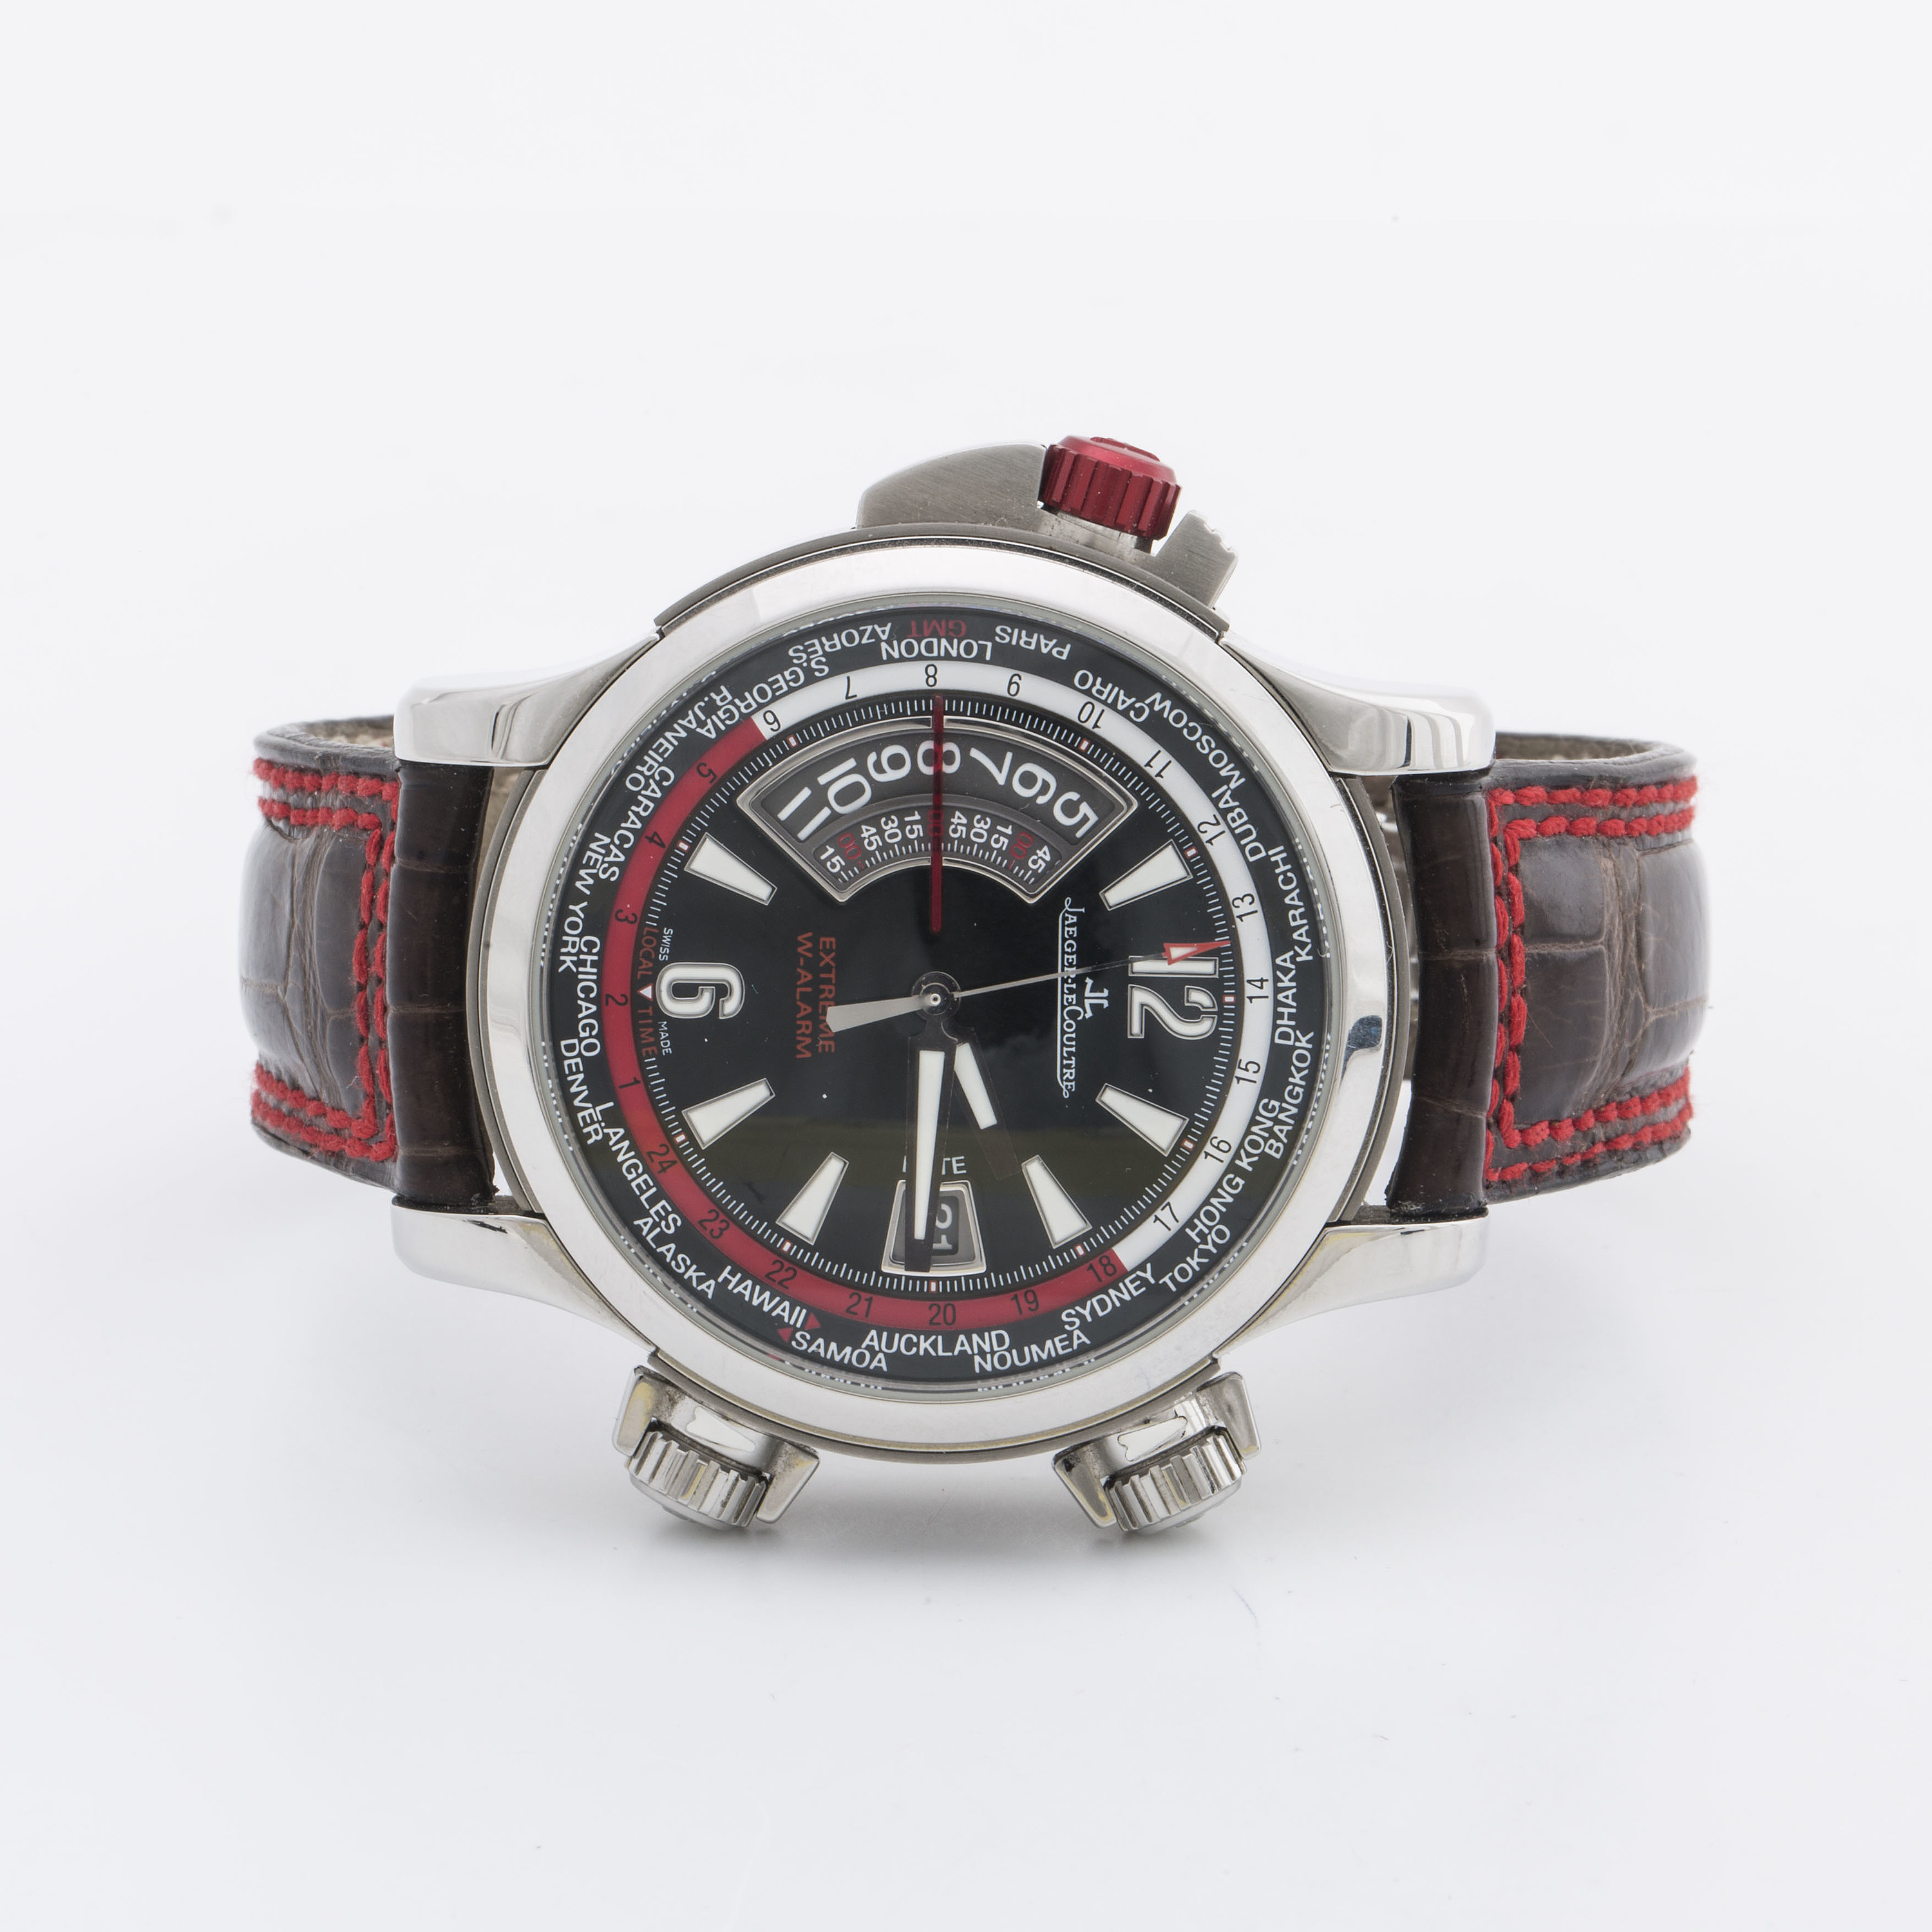 JAEGER-LECOULTRE, Master Compressor, Extreme W-Alarm